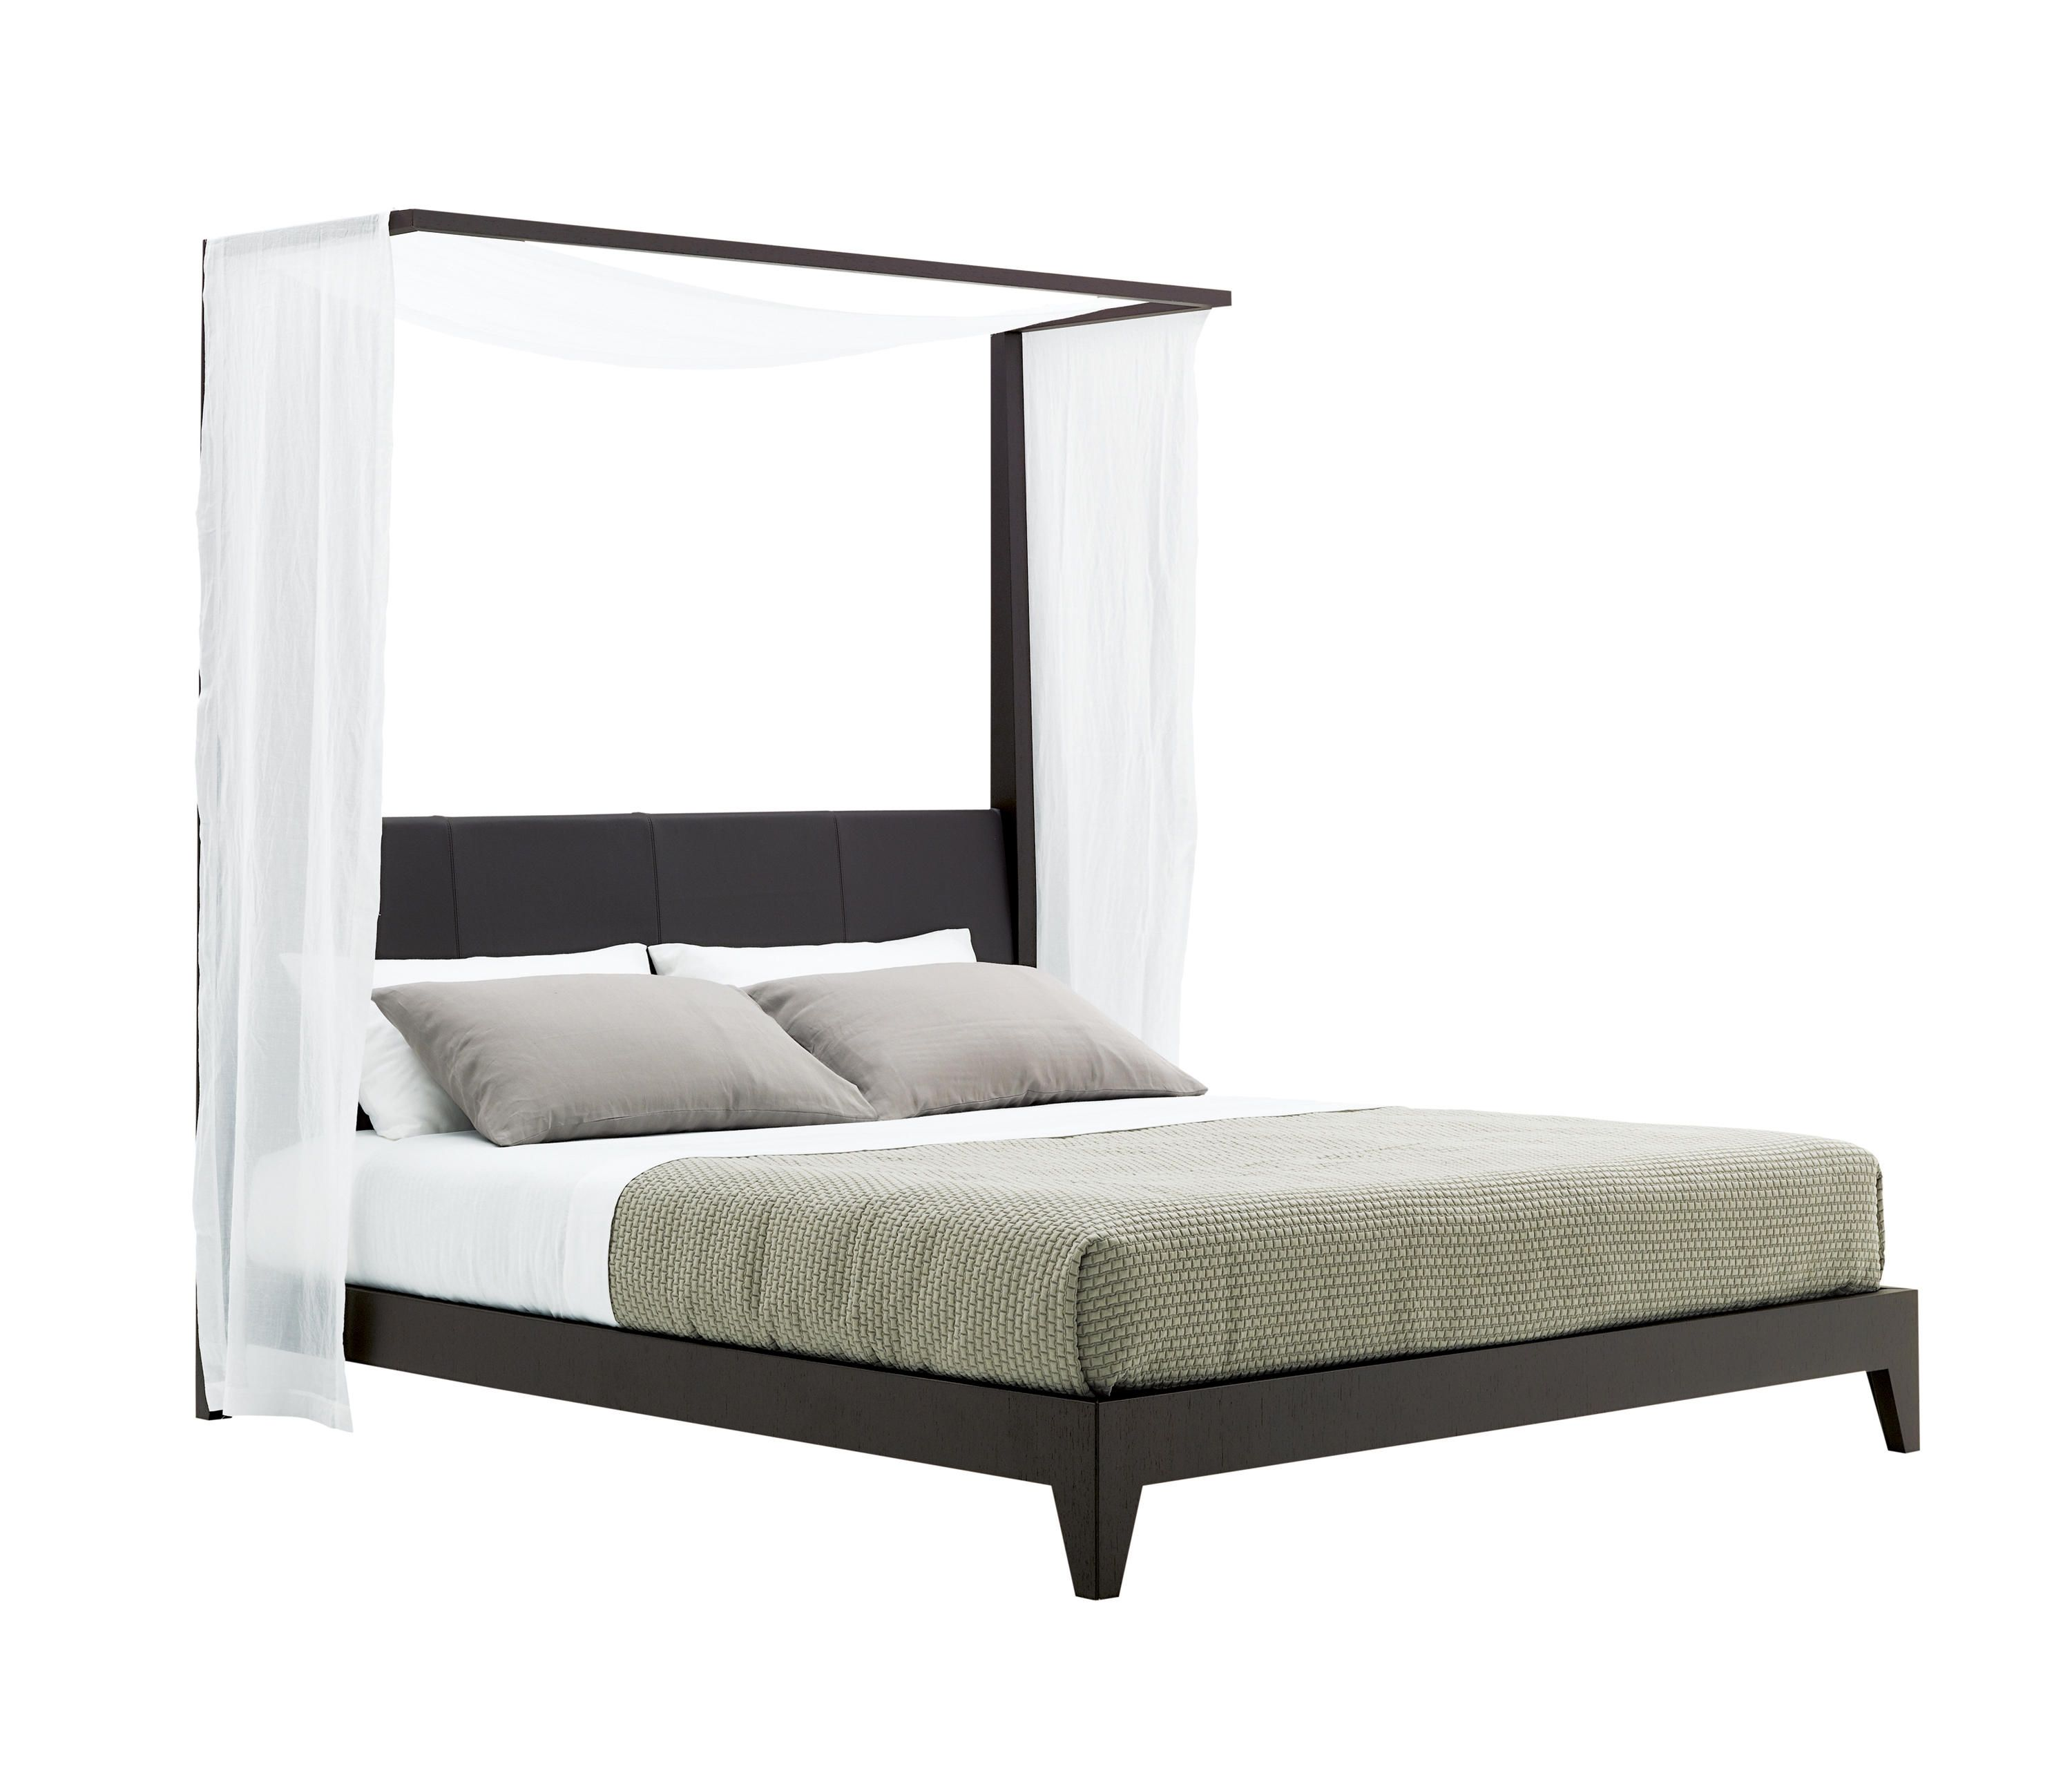 Java Bed Designer Four Poster Beds From Poliform All